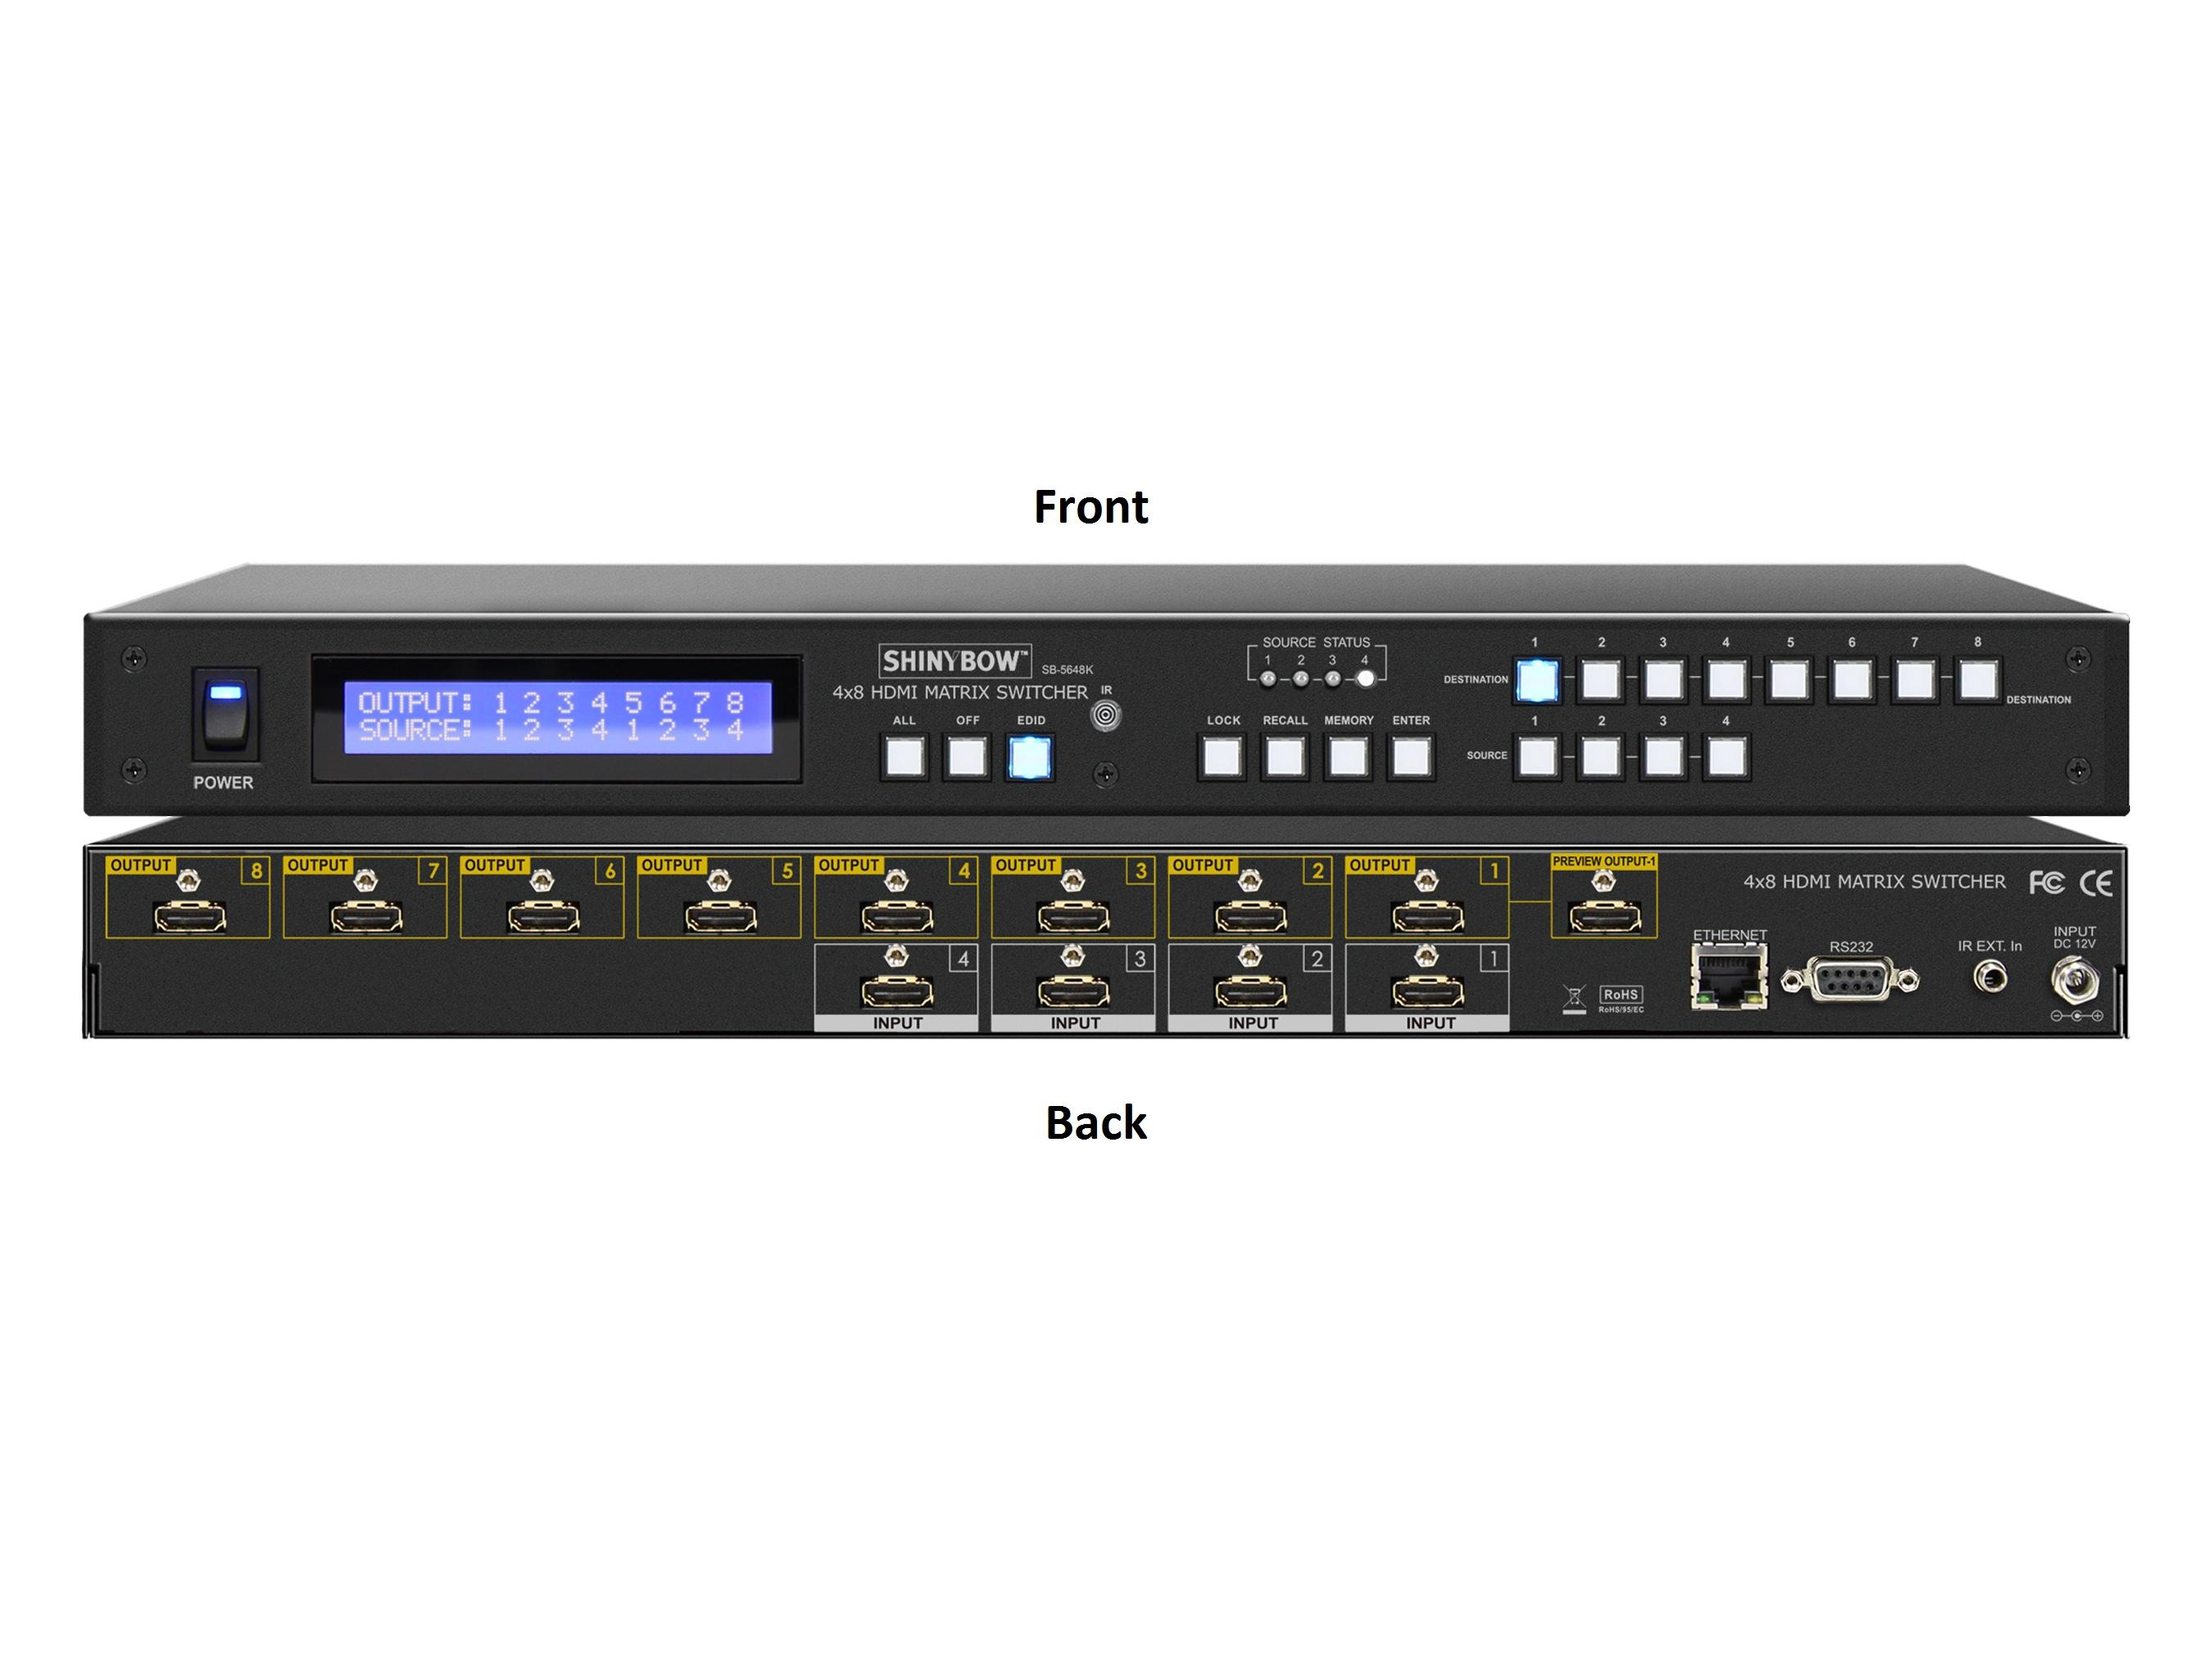 Shinybow SB-5648K 4x8 UHD 4K2K/30Hz HDMI Matrix Routing with Full EDID Management/Learning